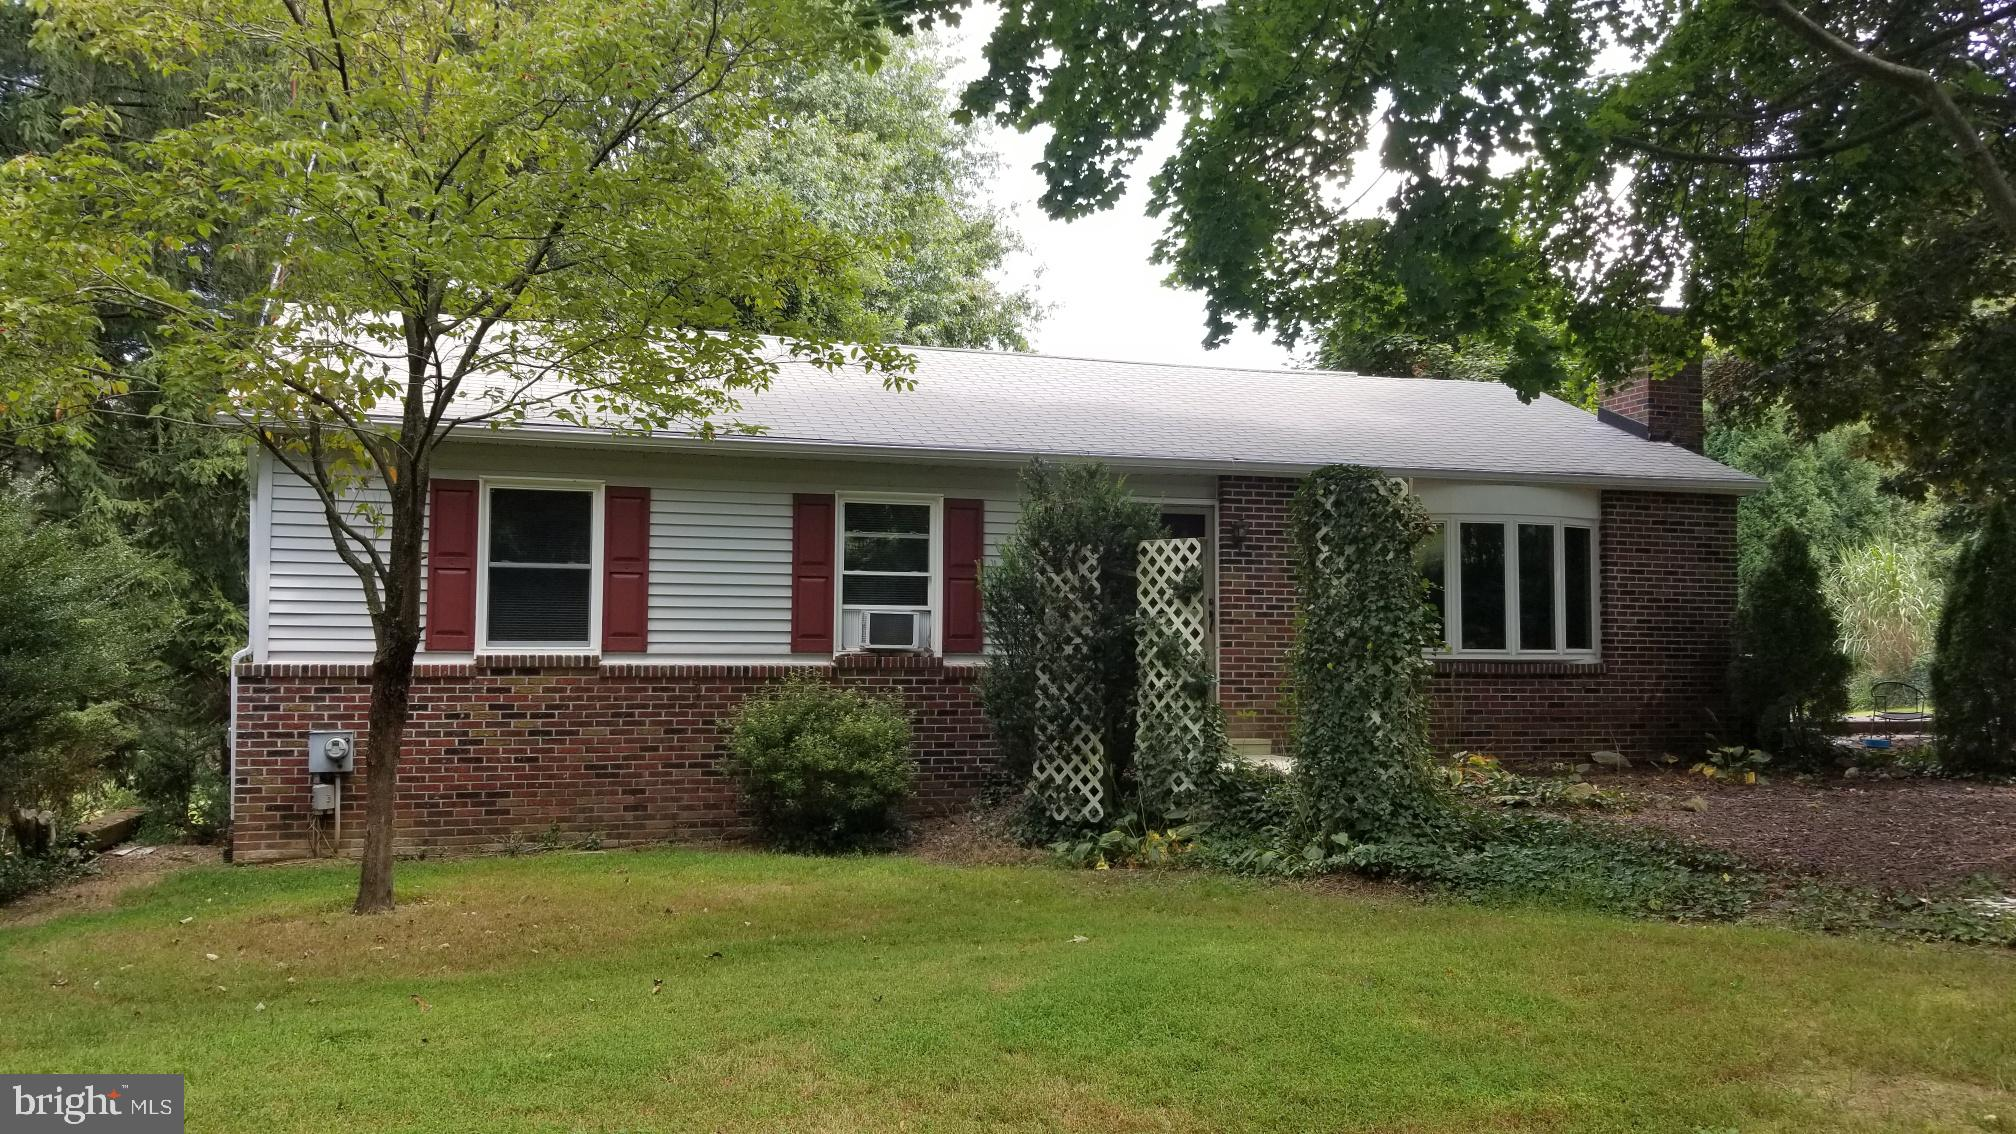 1817 SUSQUEHANNA HALL ROAD, WHITEFORD, MD 21160